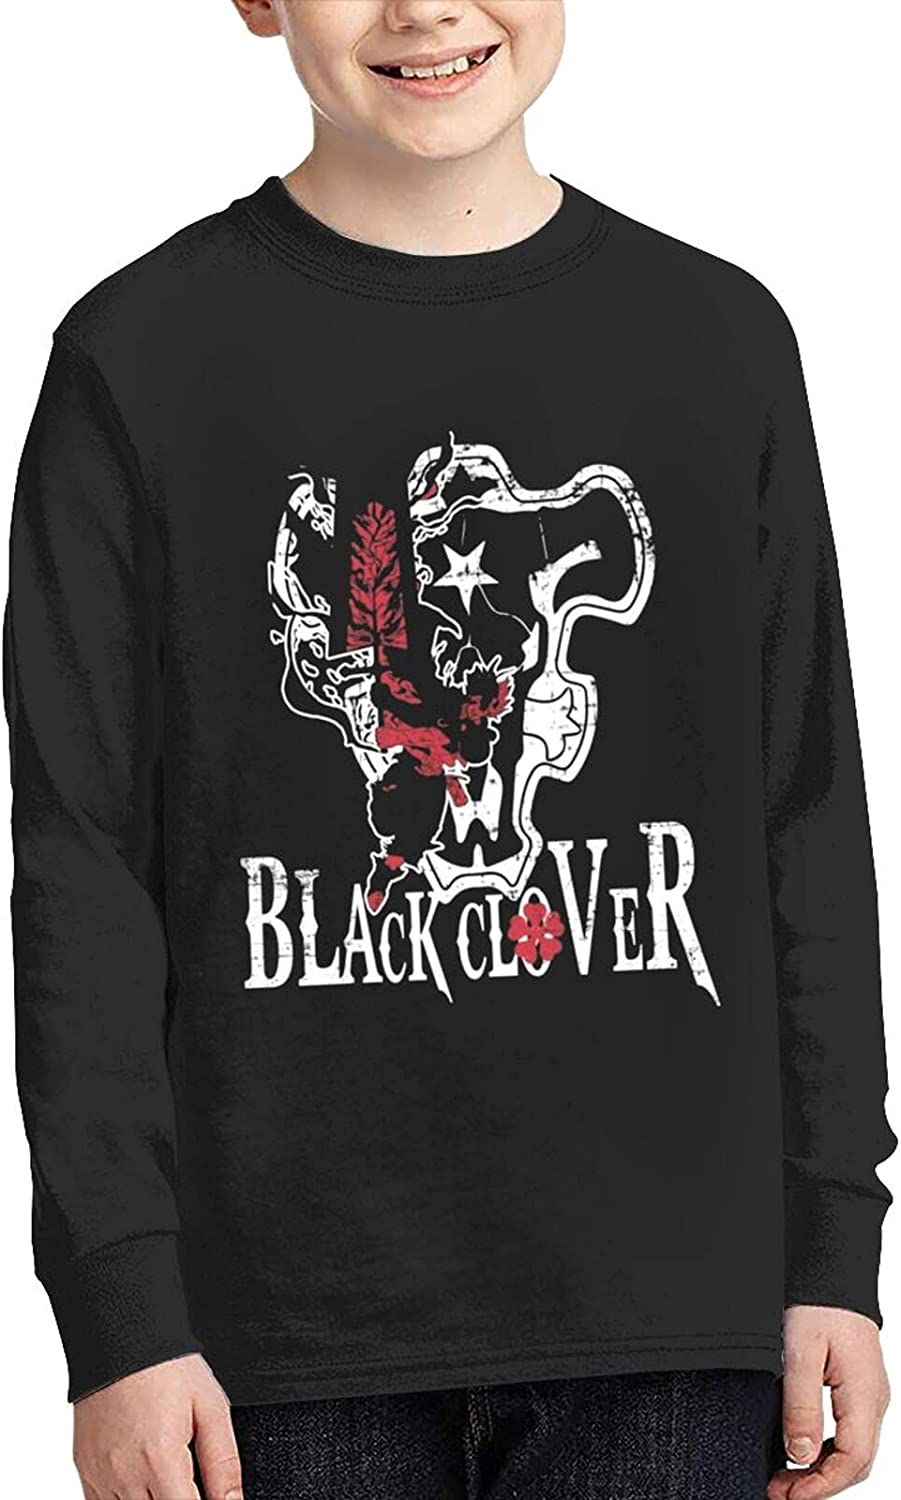 BlackClover Art Super special price T Shirts cheap Teen Anime Funny Sleeve To Long Tee